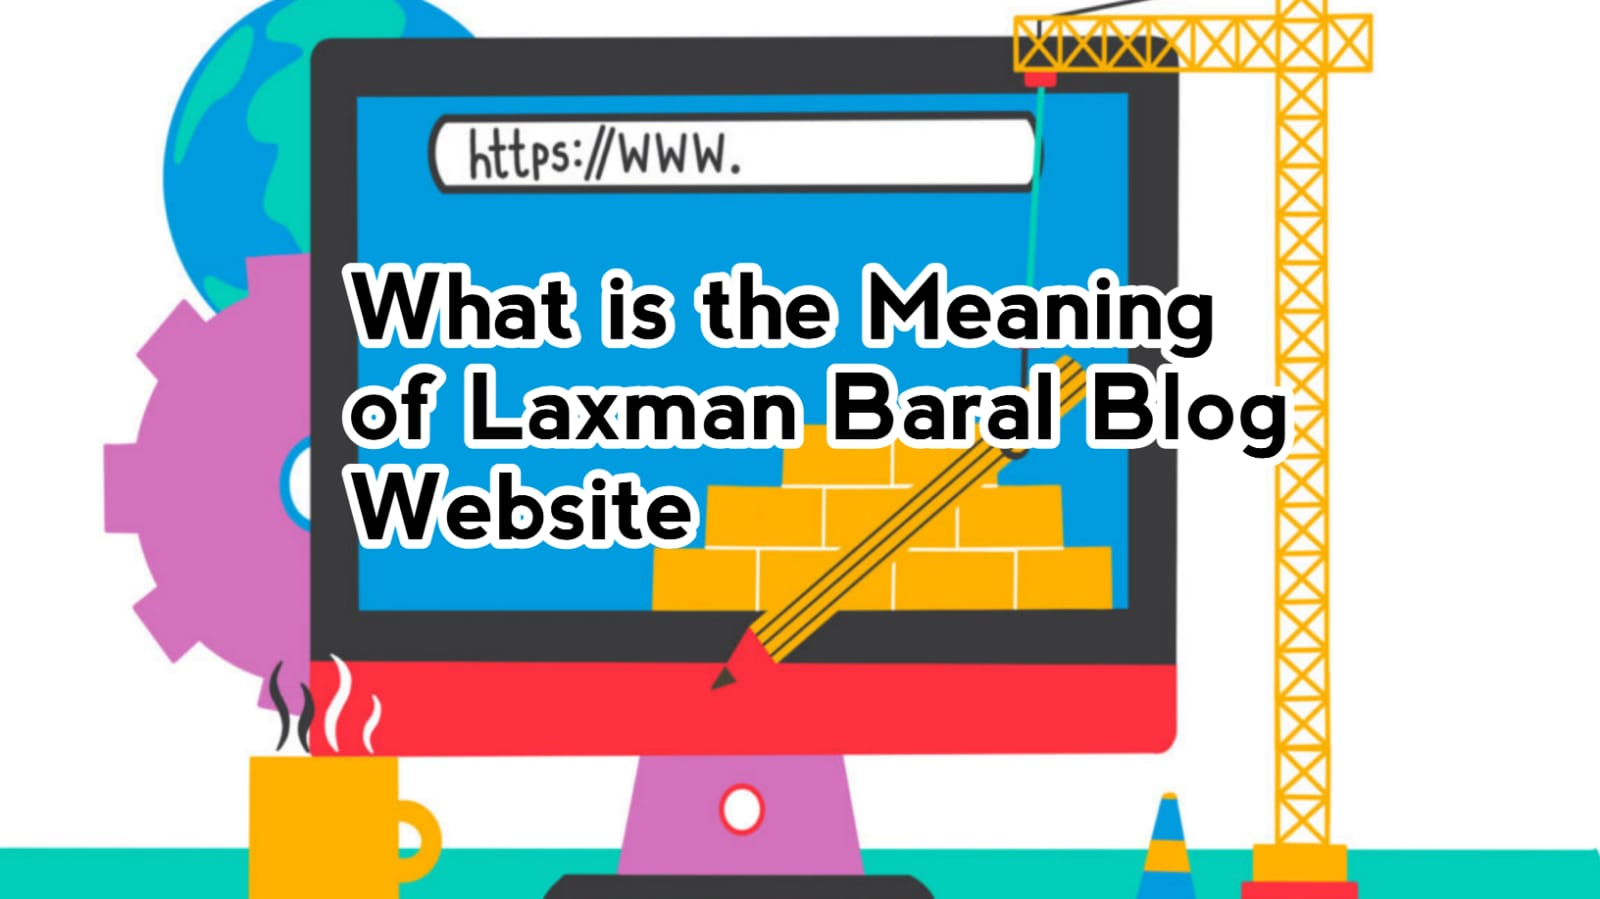 What is the Meaning of the Laxman Baral Blog Website in Nepal